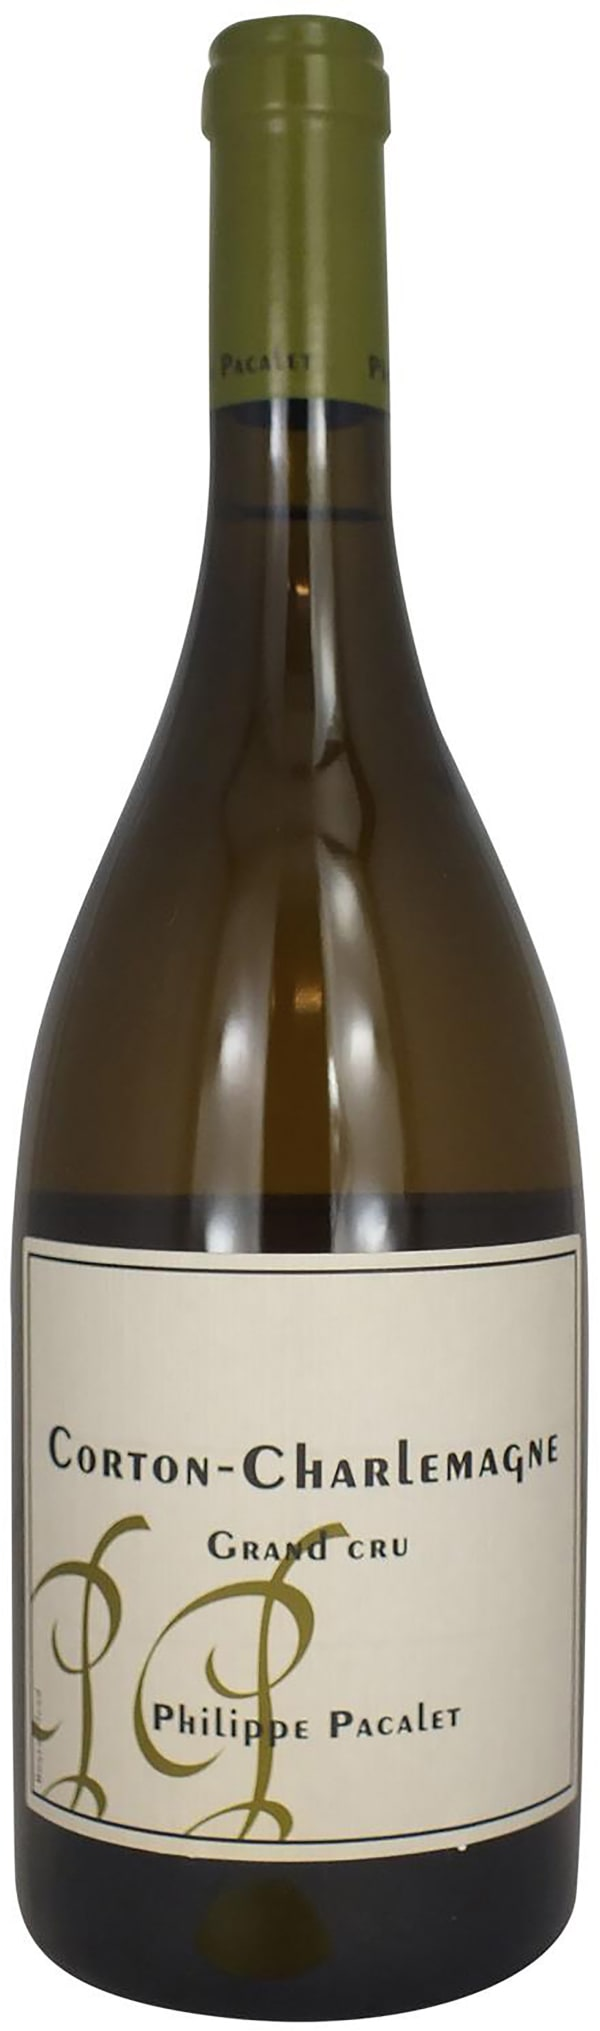 Philippe Pacalet Corton Charlemagne Grand Cru 2017